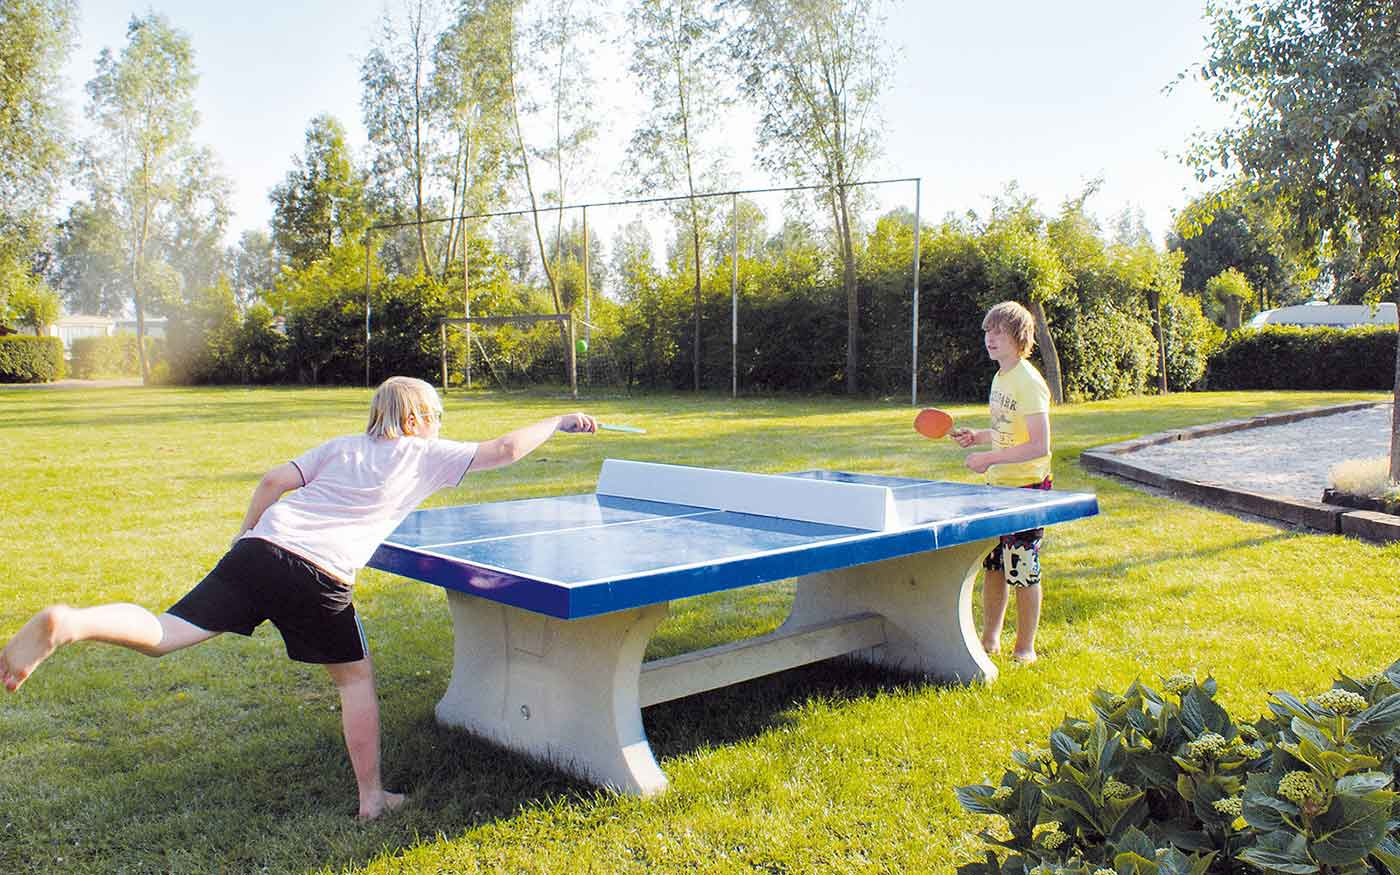 concrete table tennis table outdoors